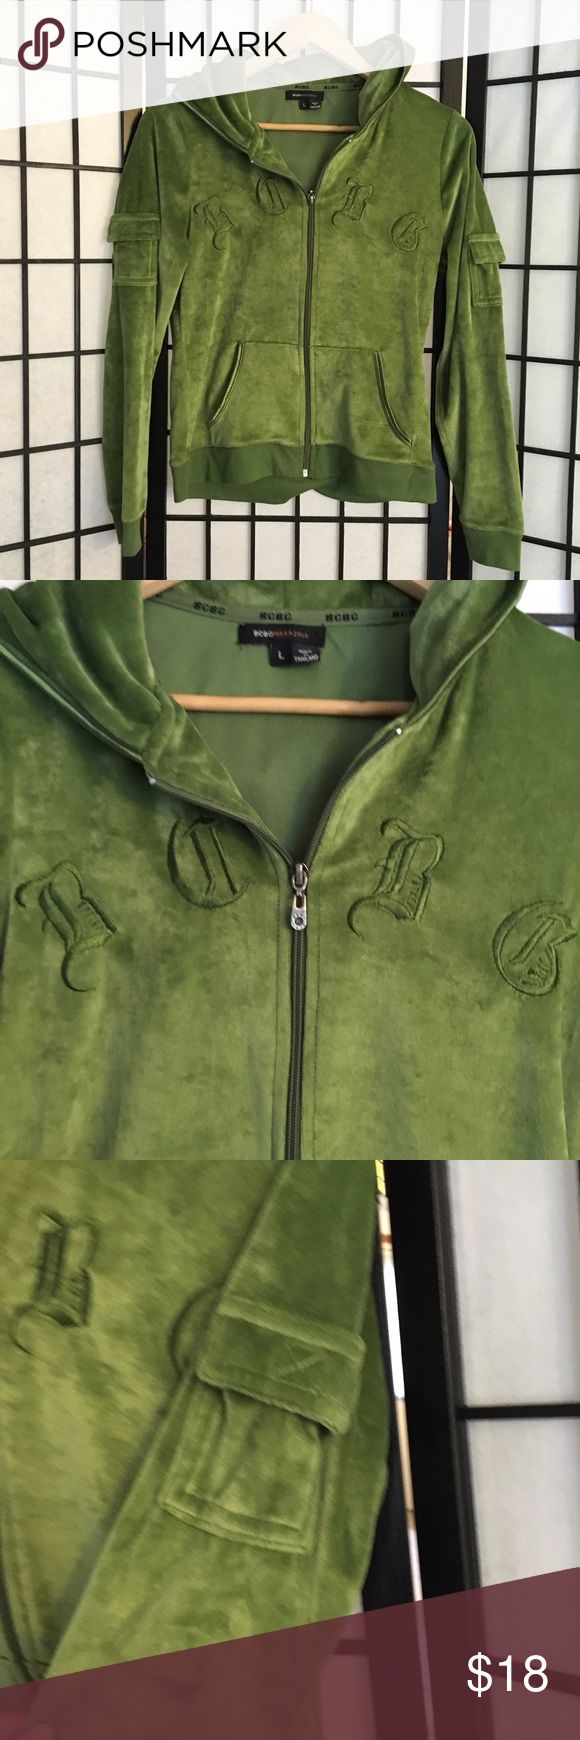 BCBG velvet sweater pine green women's L hoodie Army brat velvet sweater ⛓💚 by BCBG in the early 00s! Where do I start with this gem?! It's got lil cargo pockets on the sleeves for a hardcore touch & logo embroidery. Zips up in the front w/ hood & pockets. I love the pine green color, perfect for pairing w/ some plaid pants or camo cargoes for Cadet Kelly lookz. Condition is perfect! Tagged a size L, fits true. Looks super cute oversized too. Chest: 36 in., length: 22 in. #vintage #velvet…